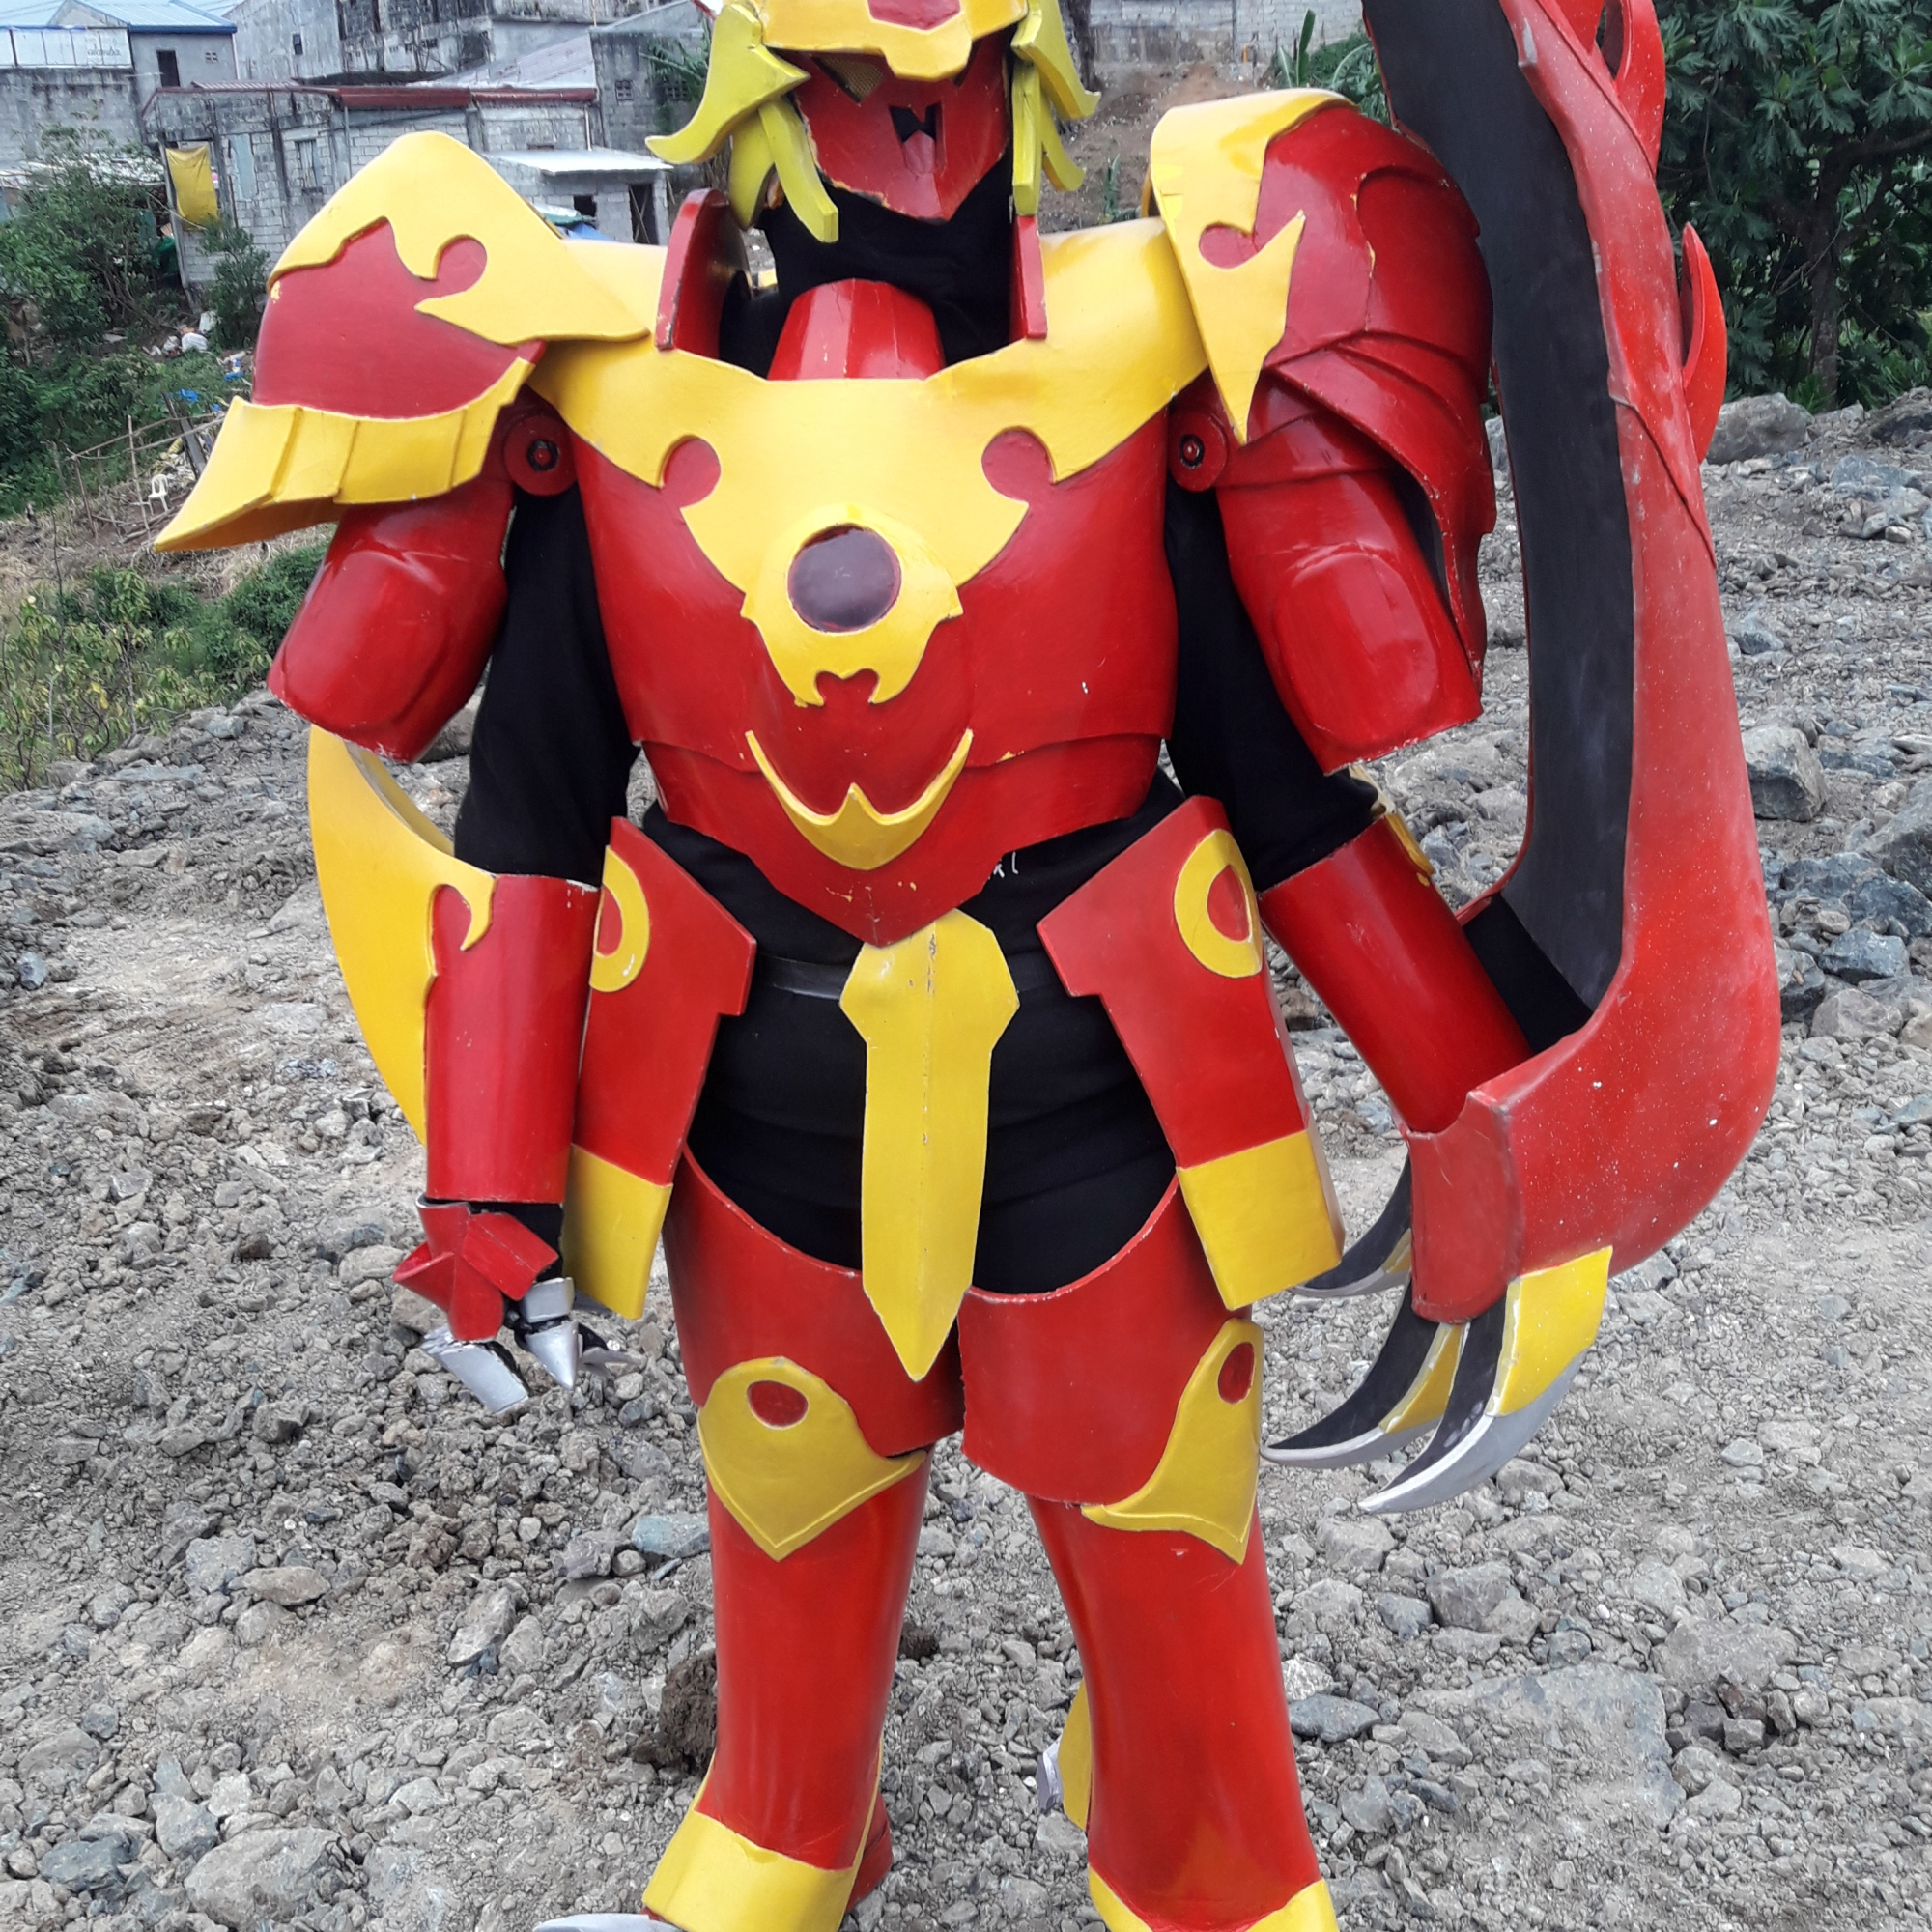 Cosplayer in armor painted in bright, warm colors